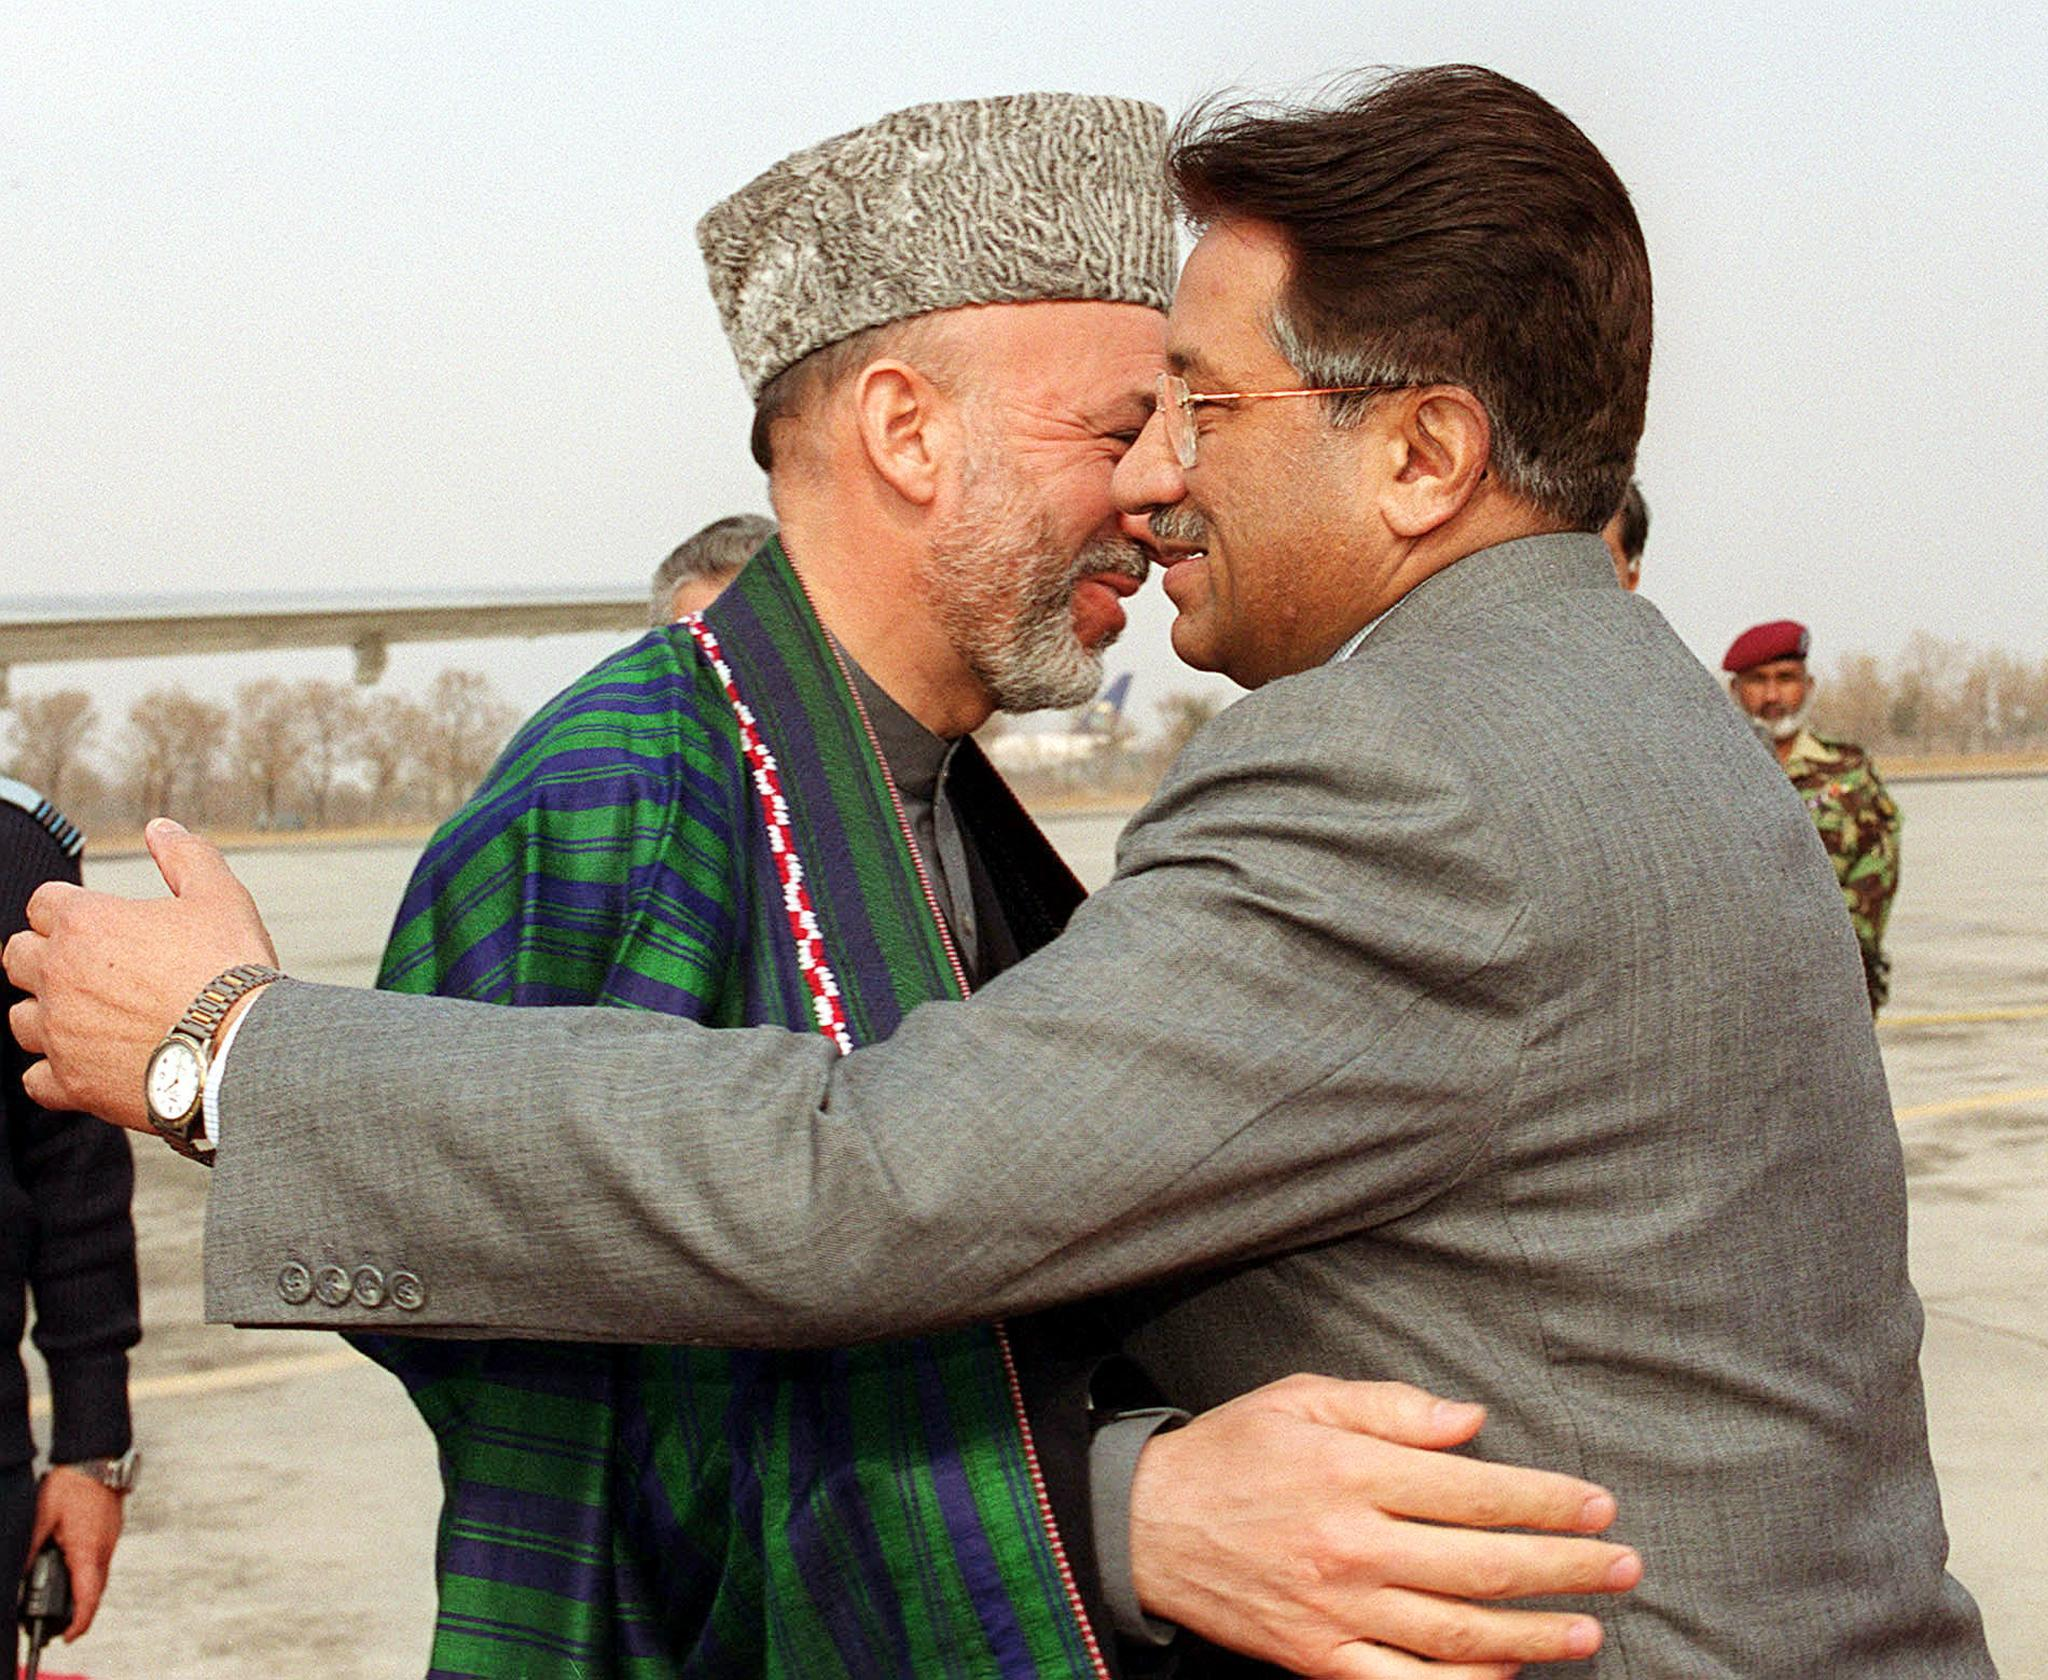 Musharraf hugs Afghan interim leader Hamid Karzai at Chaklala airbase in Rawalpindi, February 8, 2002. Karzai arrived for his first visit to Pakistan since he took office in December 2001. — AFP